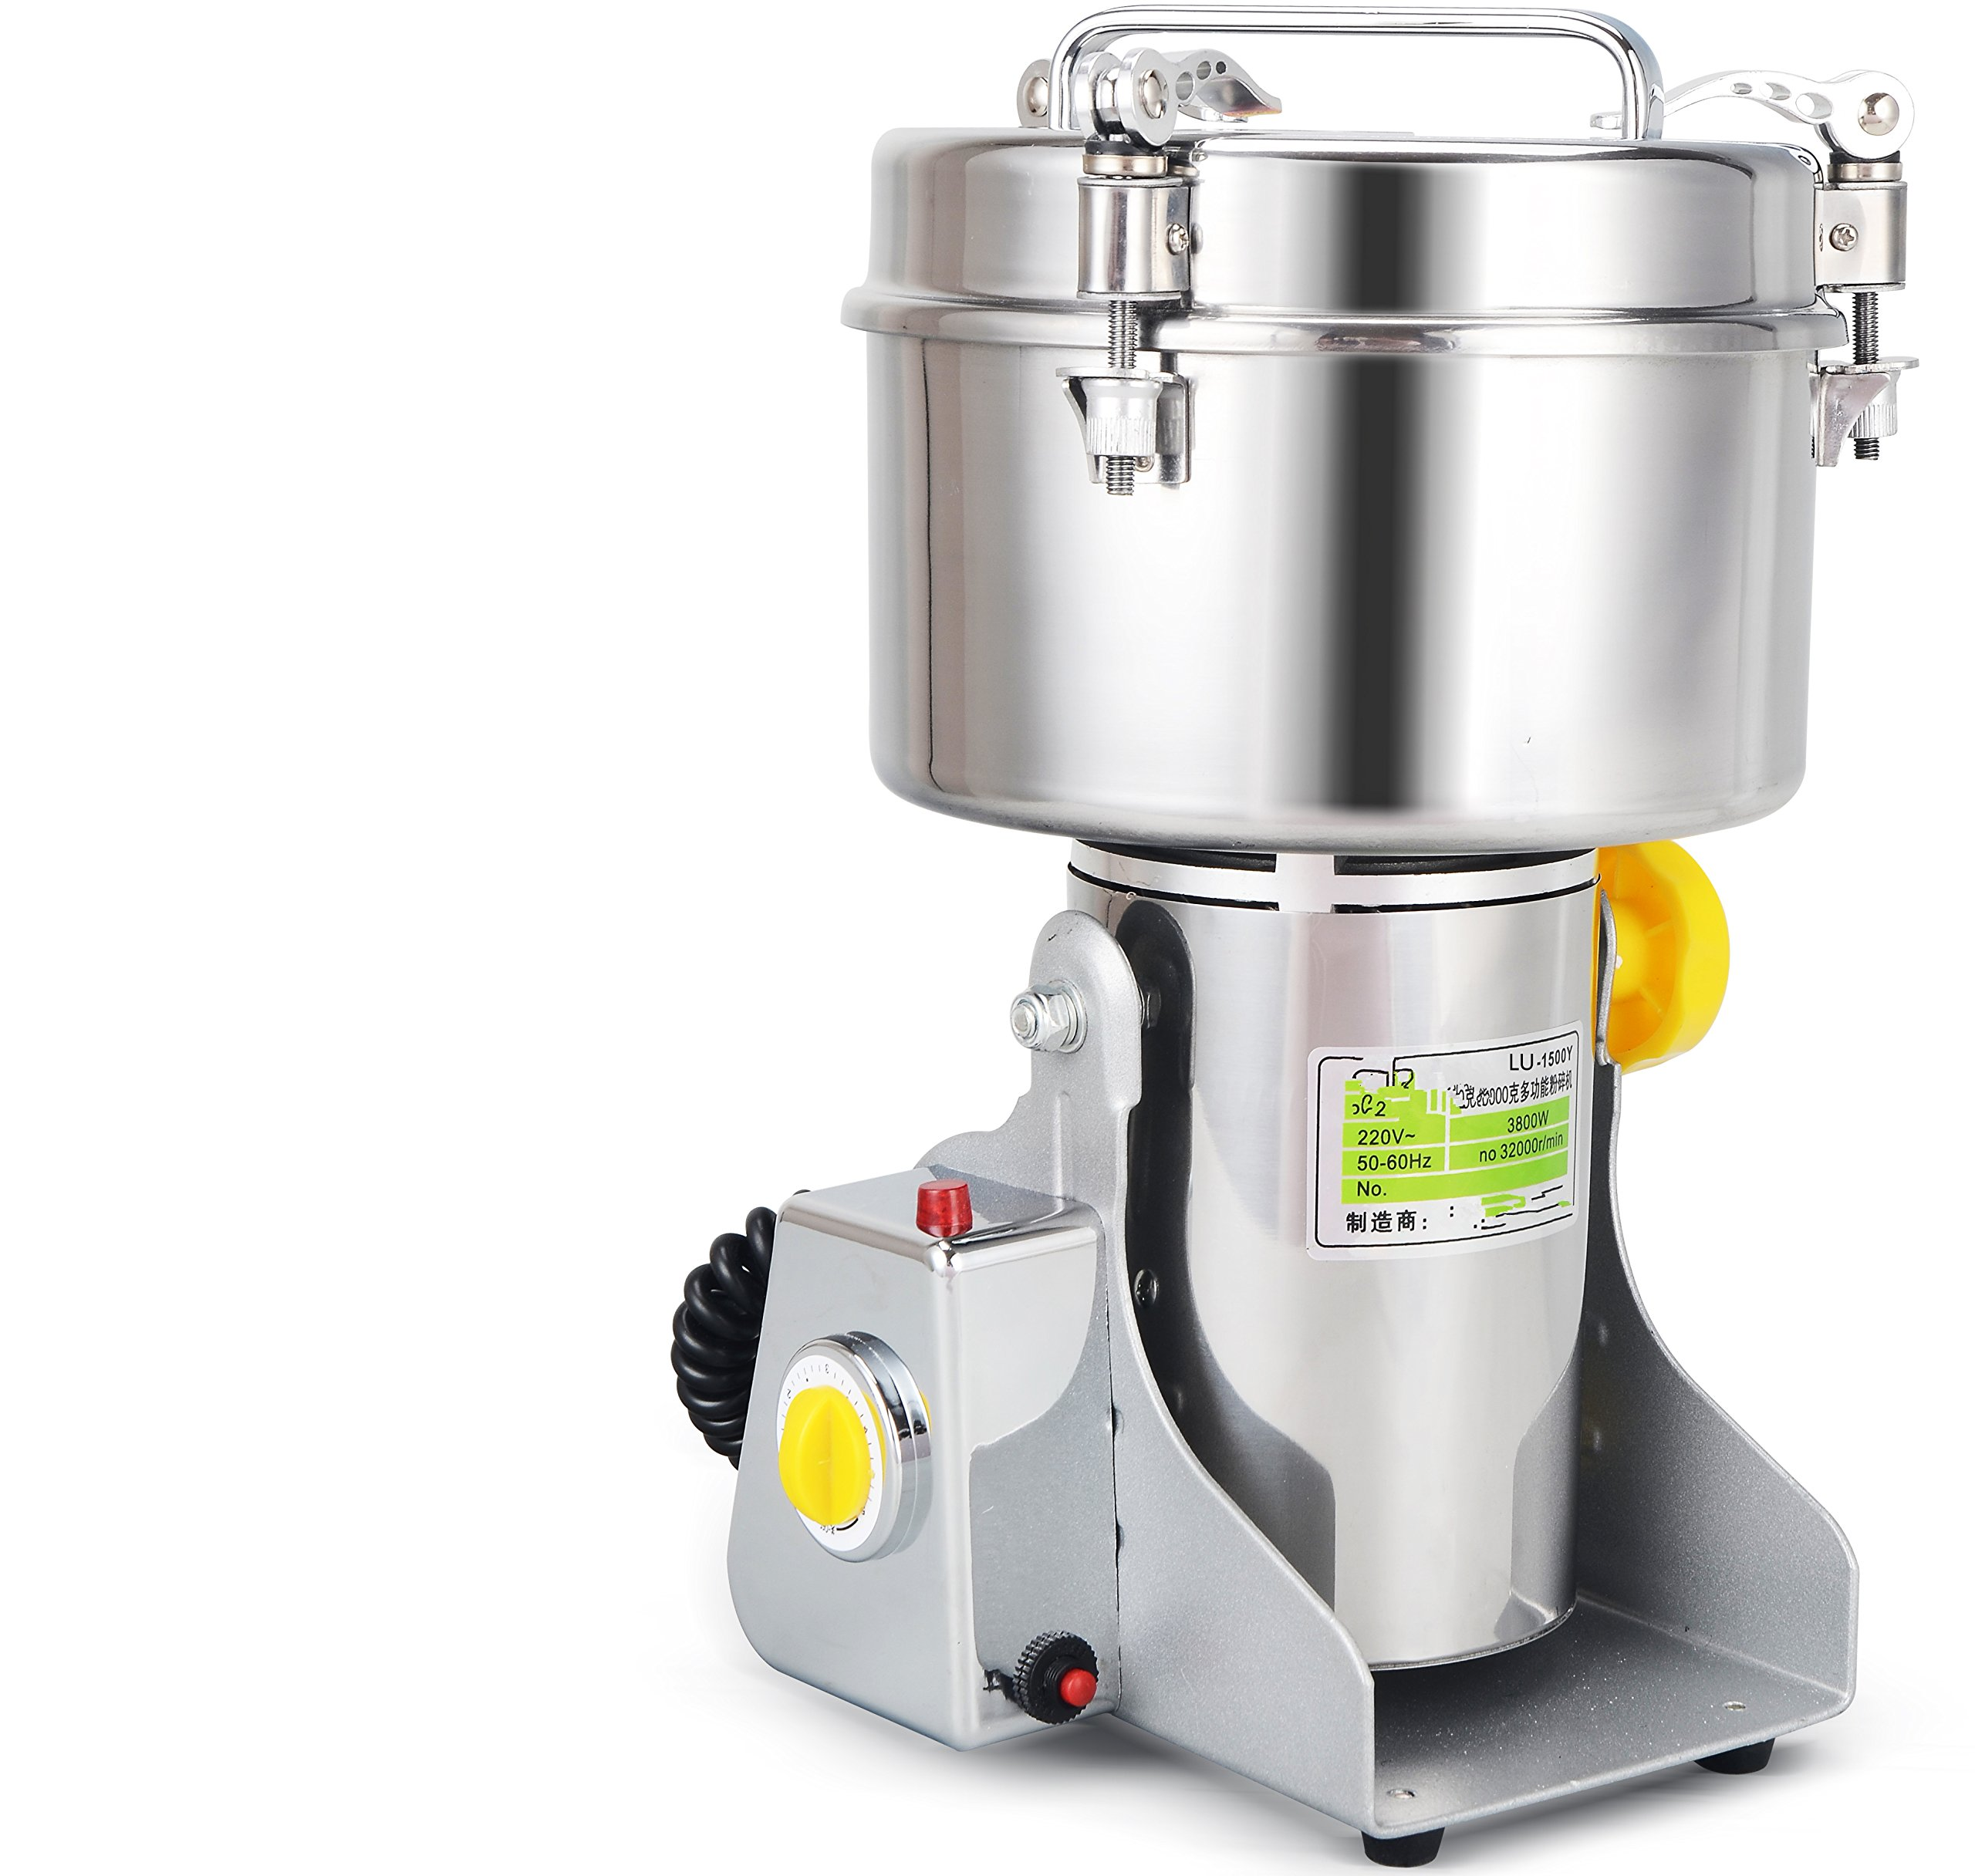 Chinese Medicine Grinder | Magic Ready in Few Minutes Herb Grinder| Large Scale 2000g 2KG Electric Spice and Nut Grinder | 110V USA /220V | Grain Pulverizer | Seed Mill | CE Certification